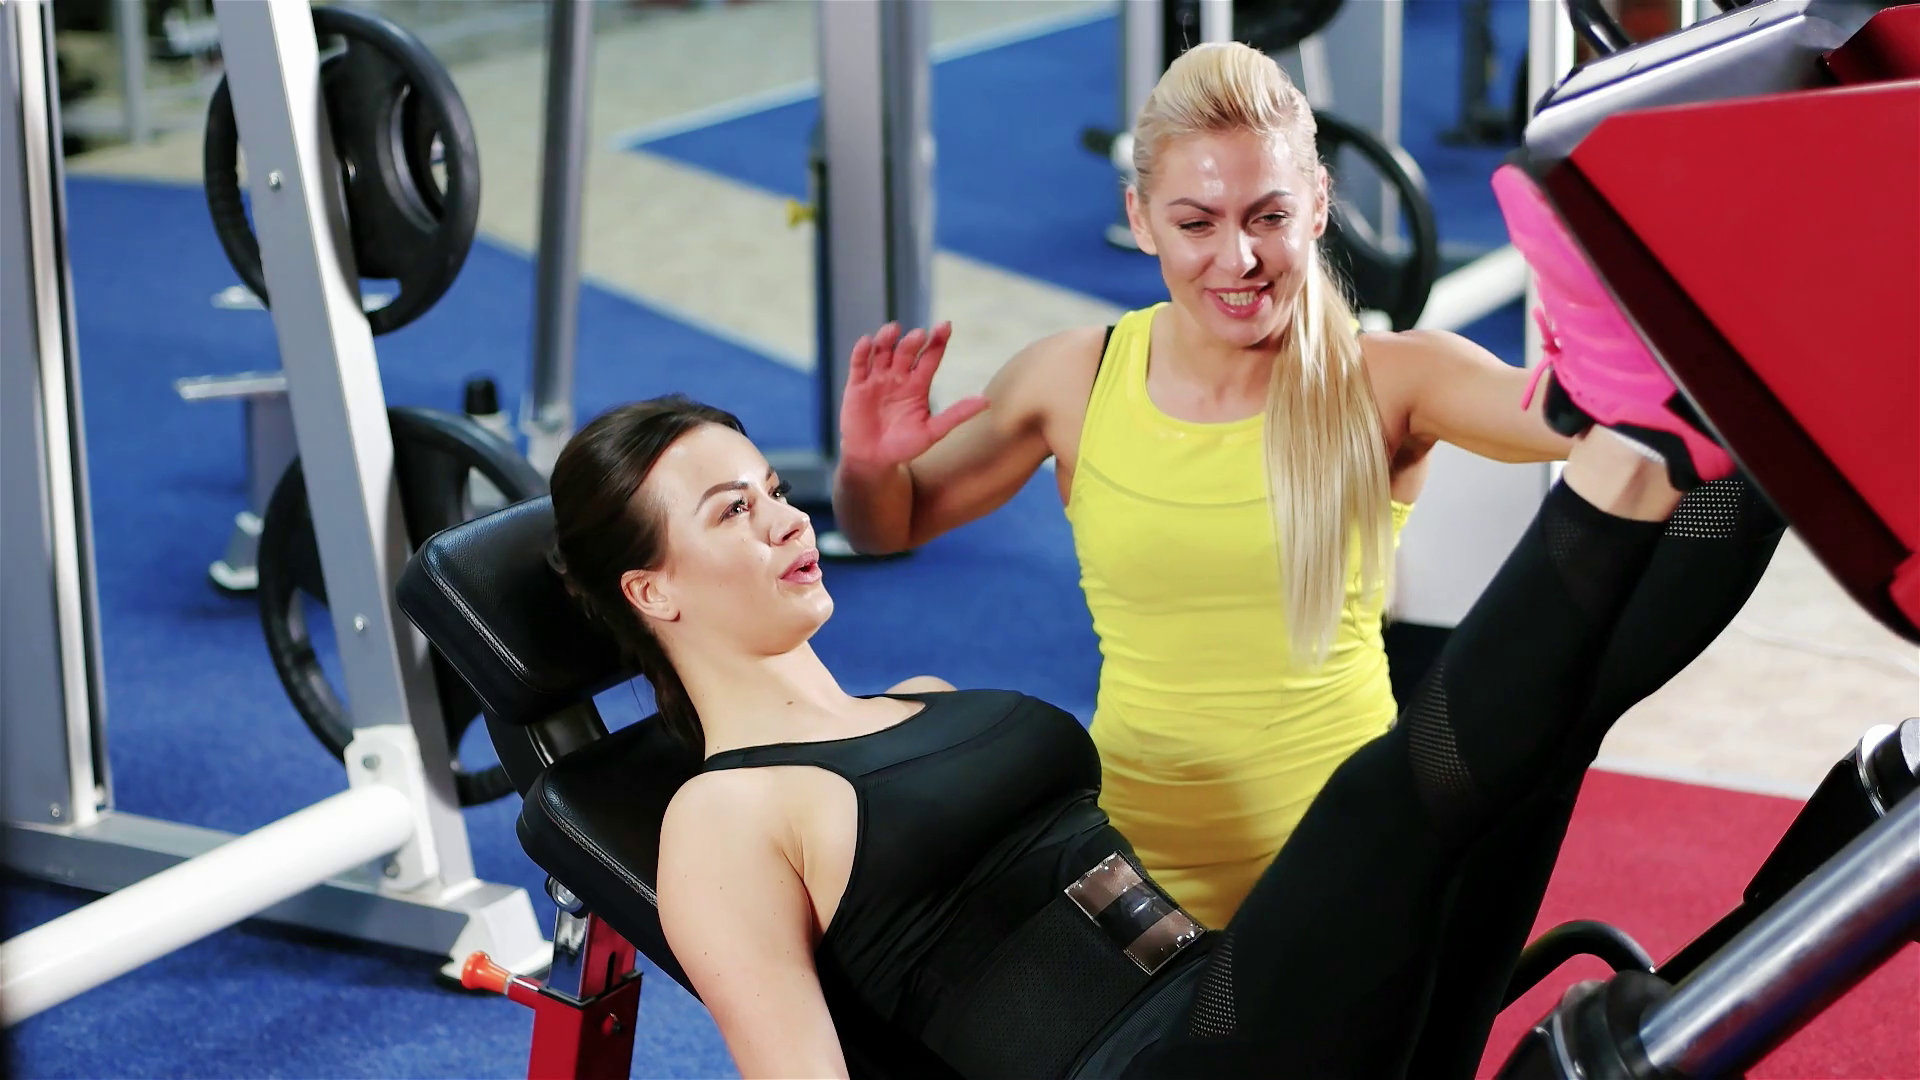 trainer helps the woman to perform strength exercises workout with simulator leg press in the gym girl is engaged in fitness with the coach in the gym htgclslftg thumbnail full01 9f351